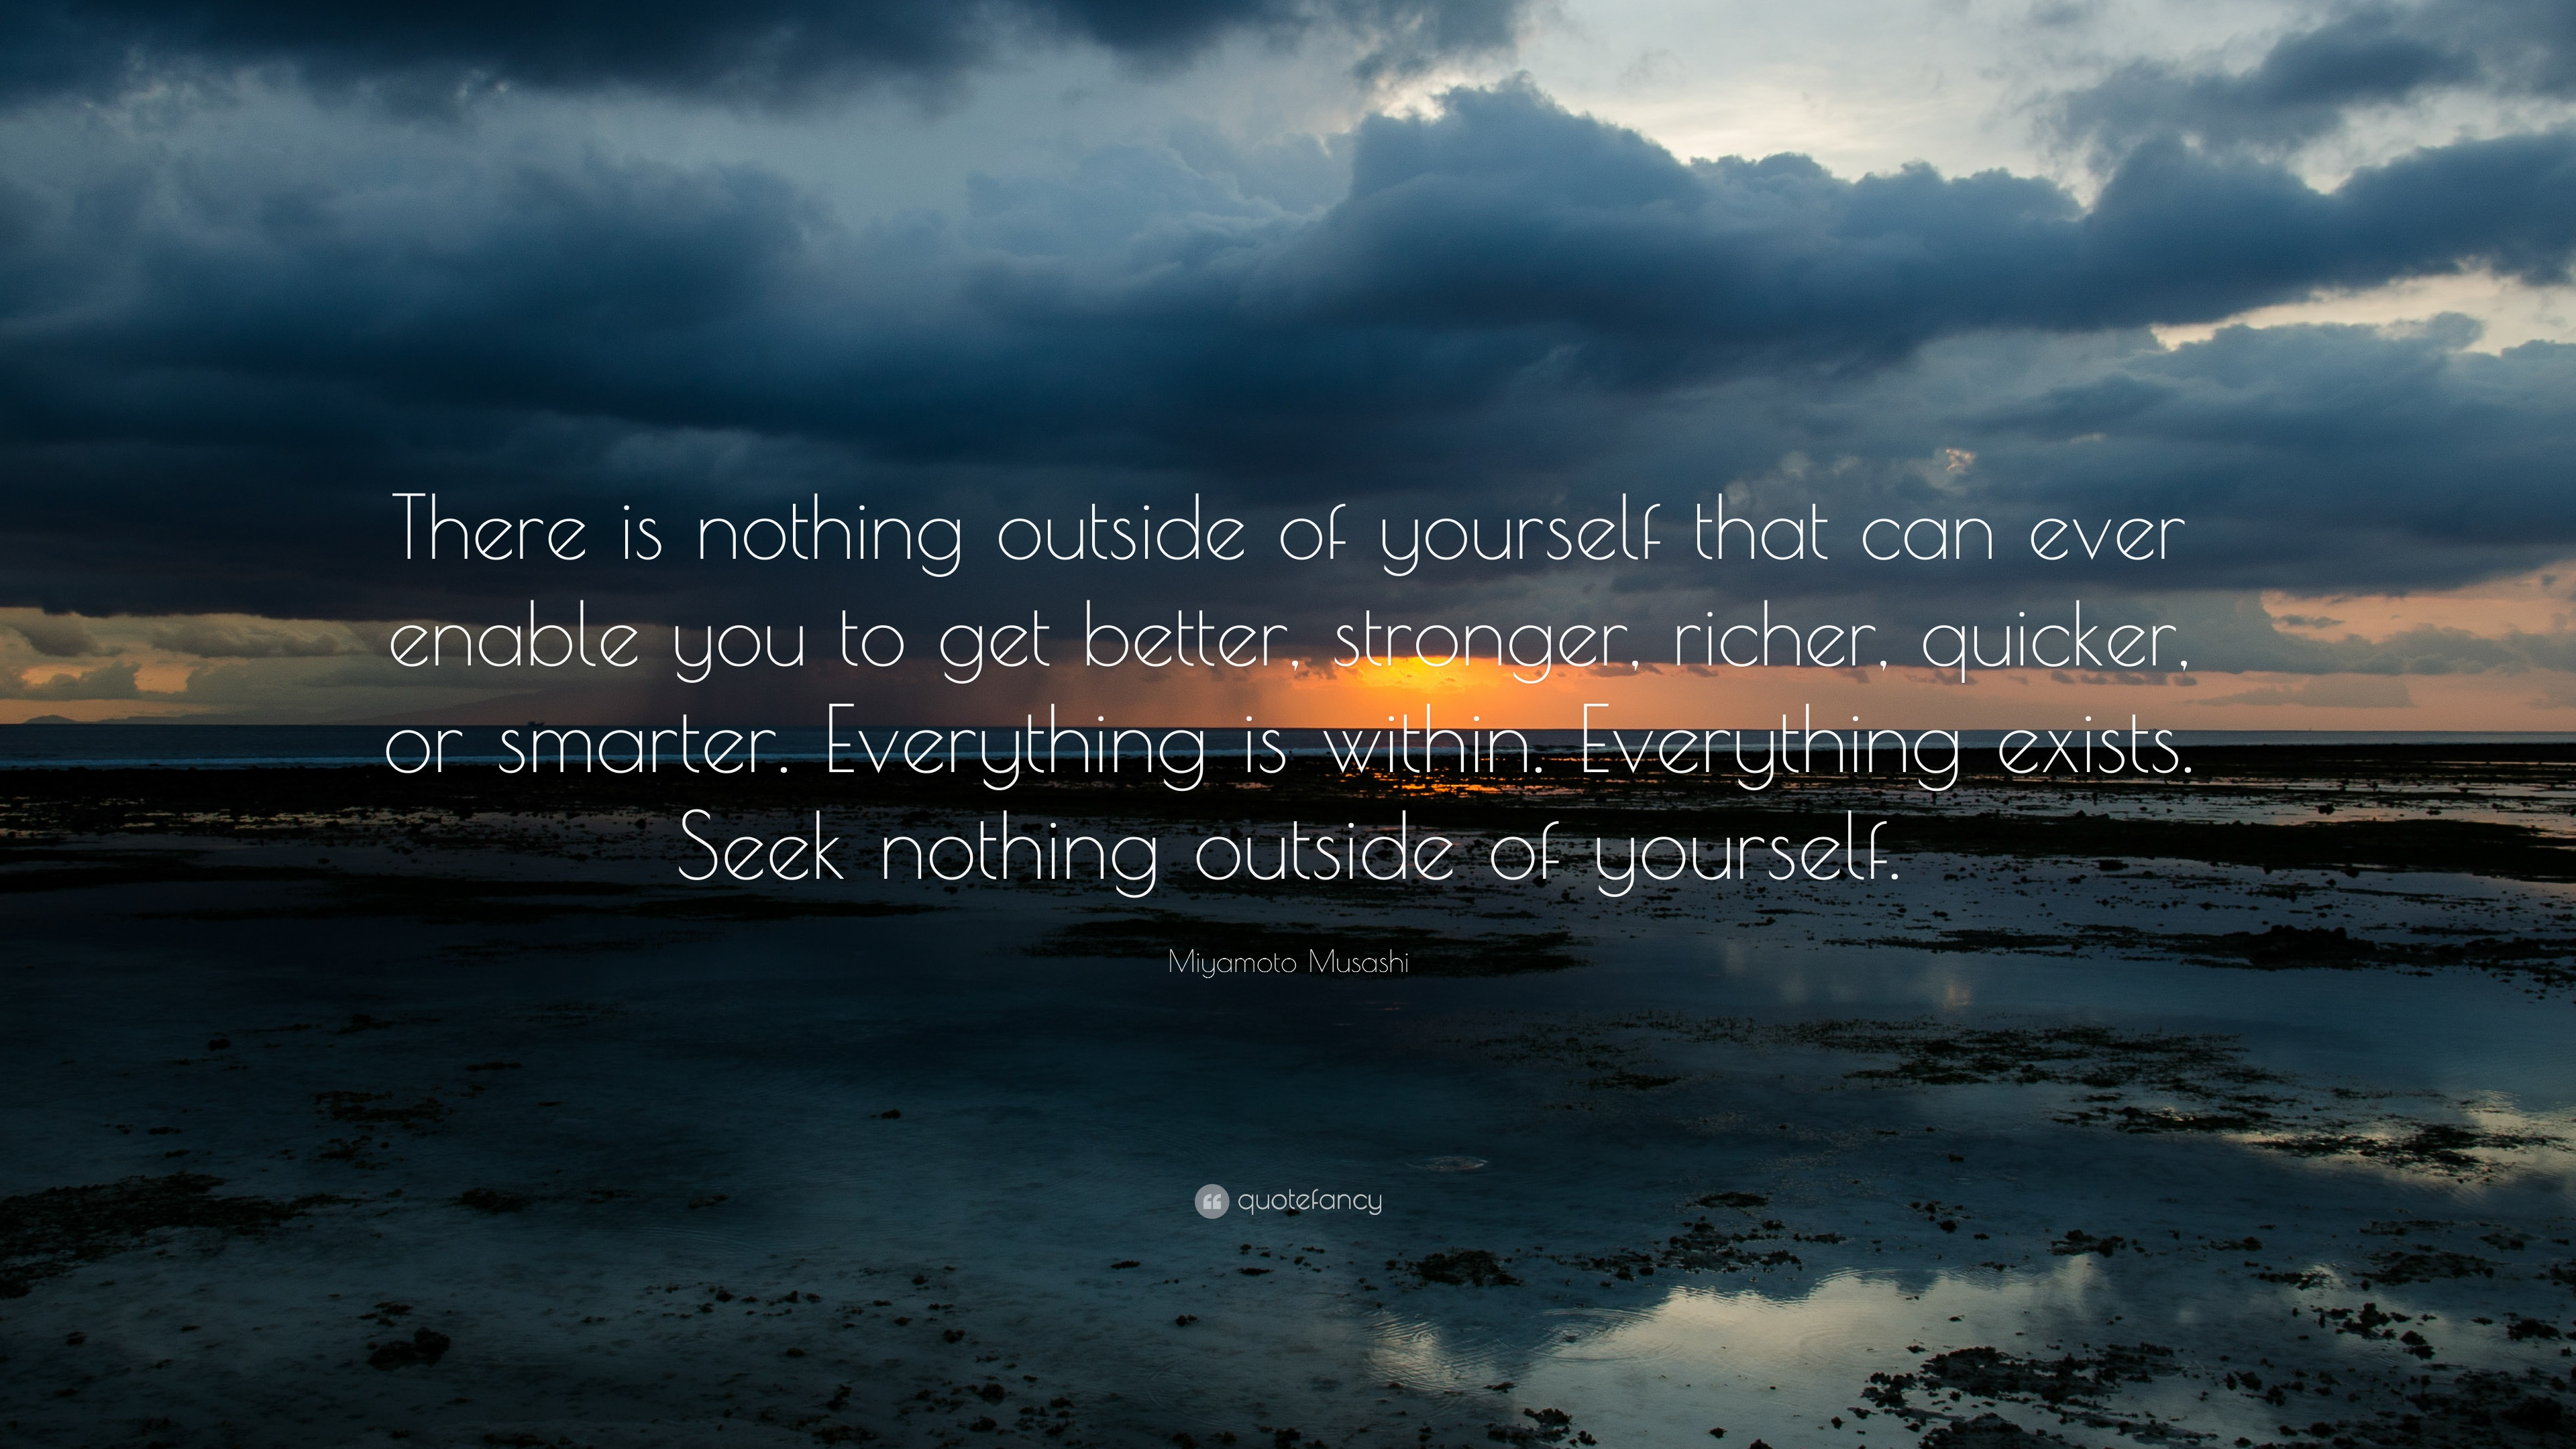 Theodore Roosevelt Wallpaper Quote Miyamoto Musashi Quote There Is Nothing Outside Of